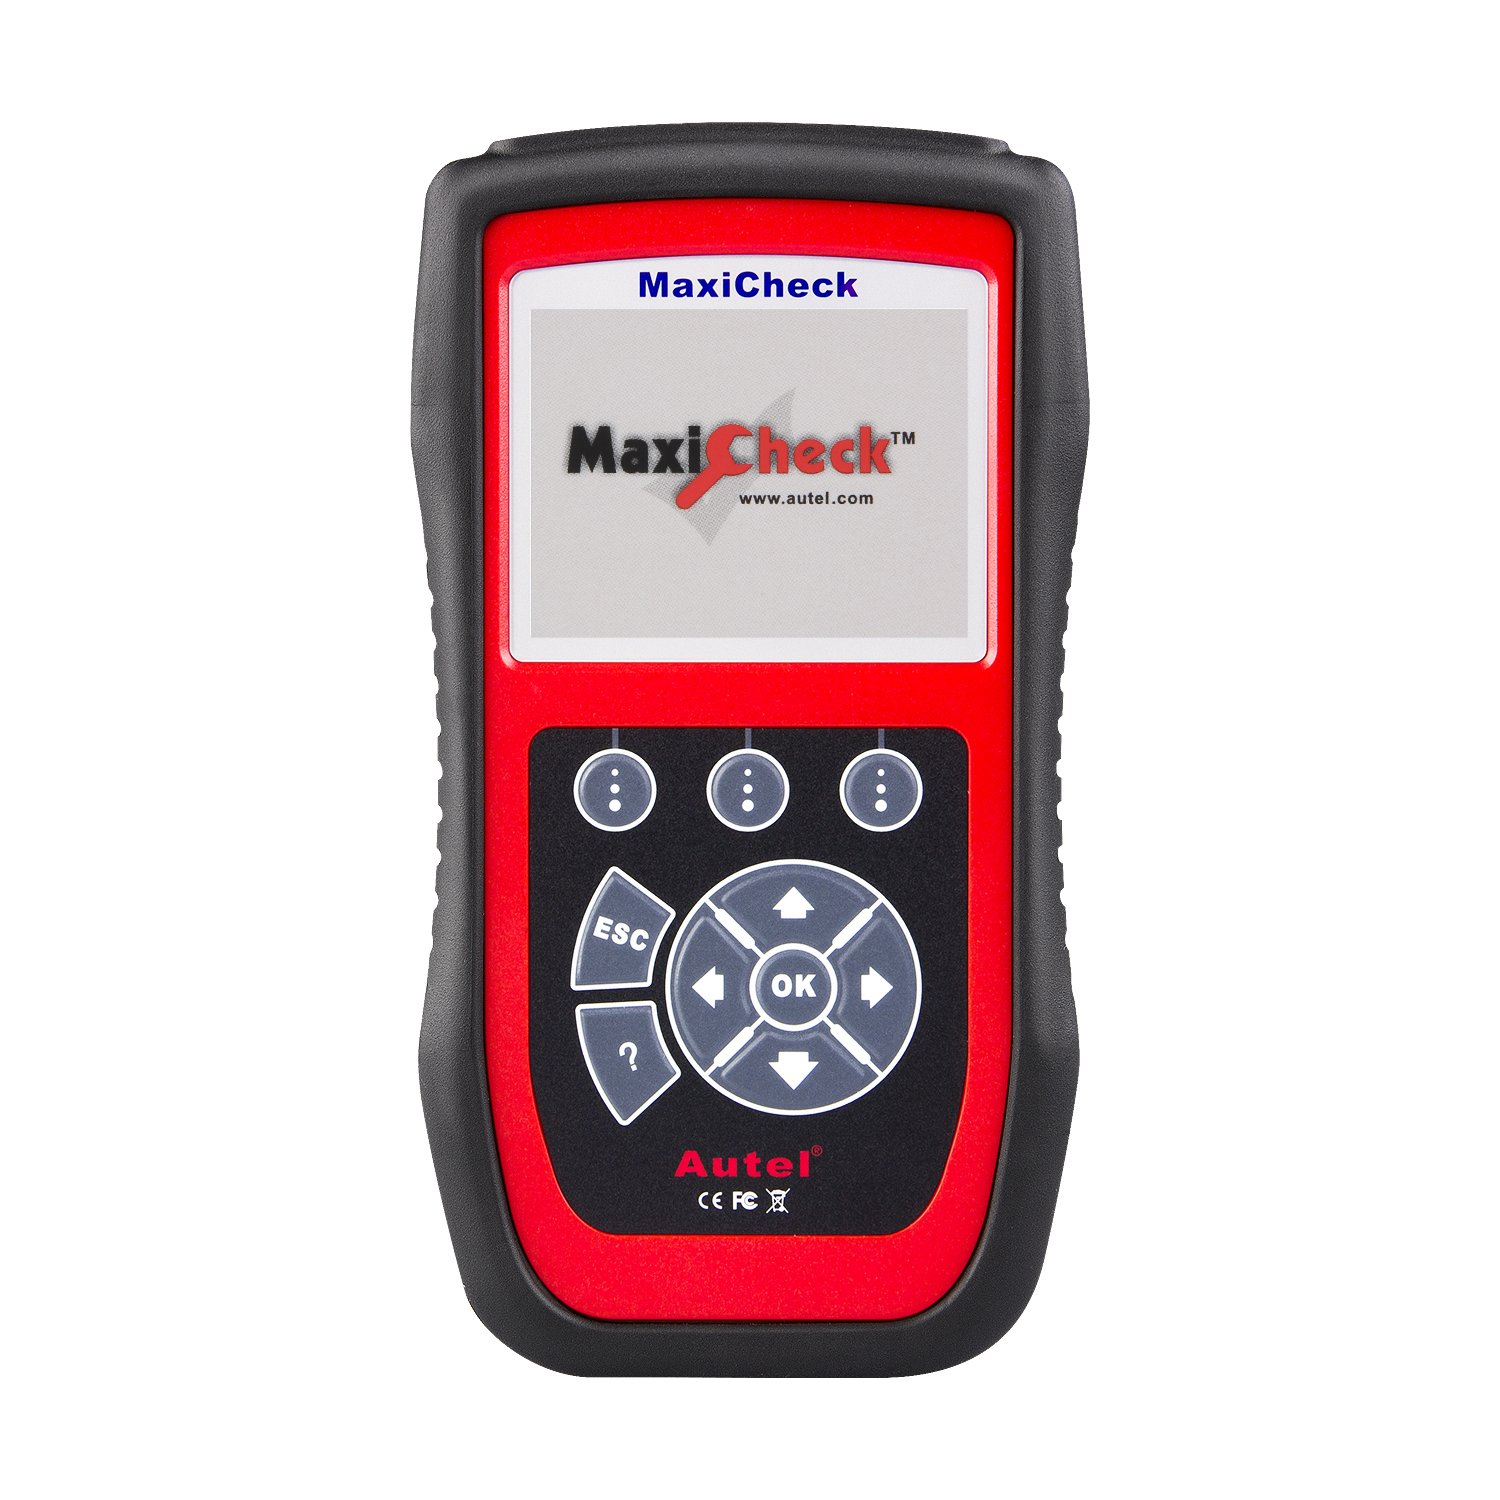 Autel MaxiCheck Pro Diagnostic Tool for ABS Brake Auto Bleed, Oil Service, ABS, SRS, BMS, DPF, EPB Service, SAS, Oil Light/Service Reset Scanner by Autel (Image #1)